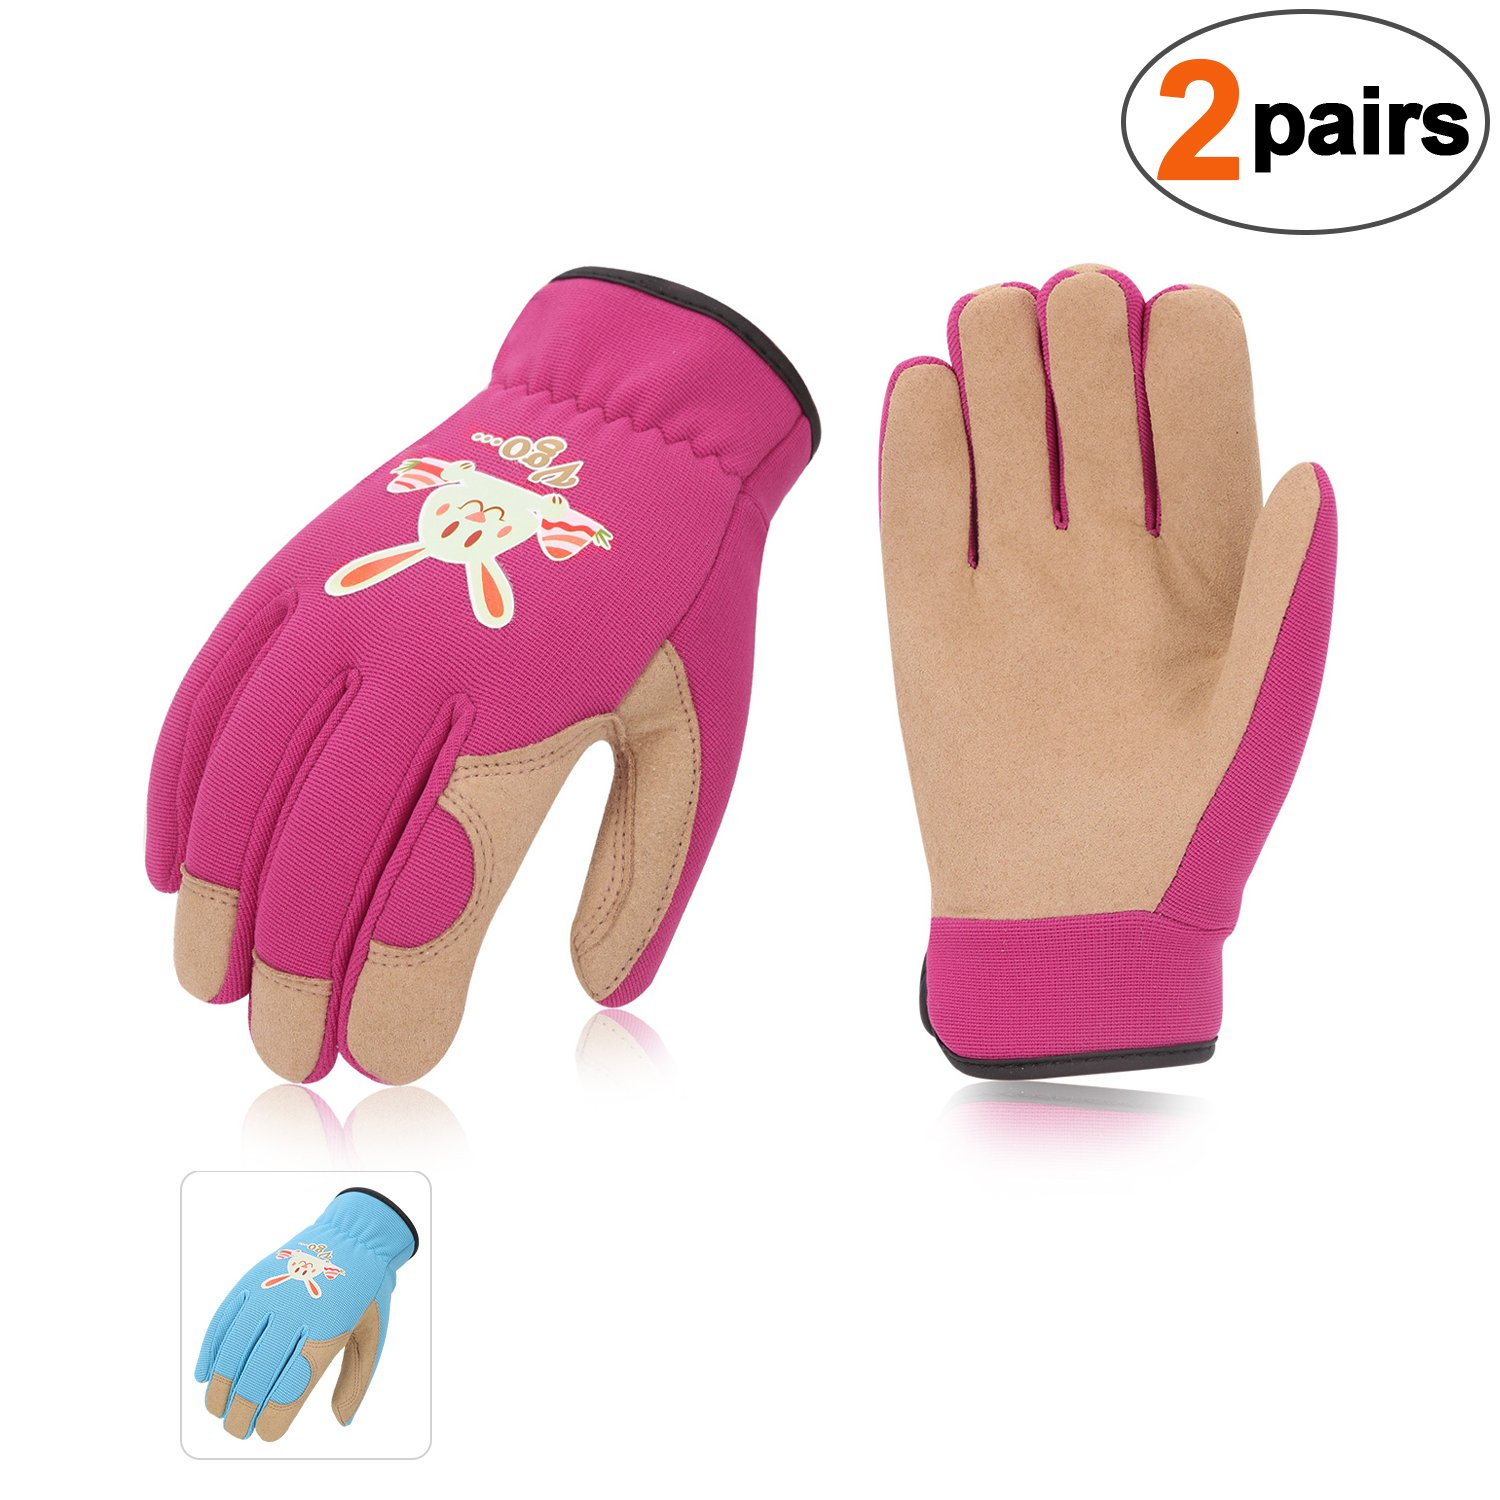 Vgo... 2-Pairs Kids Age 3-4 Gardening,Lawing,Working Gloves(Size XS, 2Colors,Synthetic Leather and Spandex,KID-SL7362)